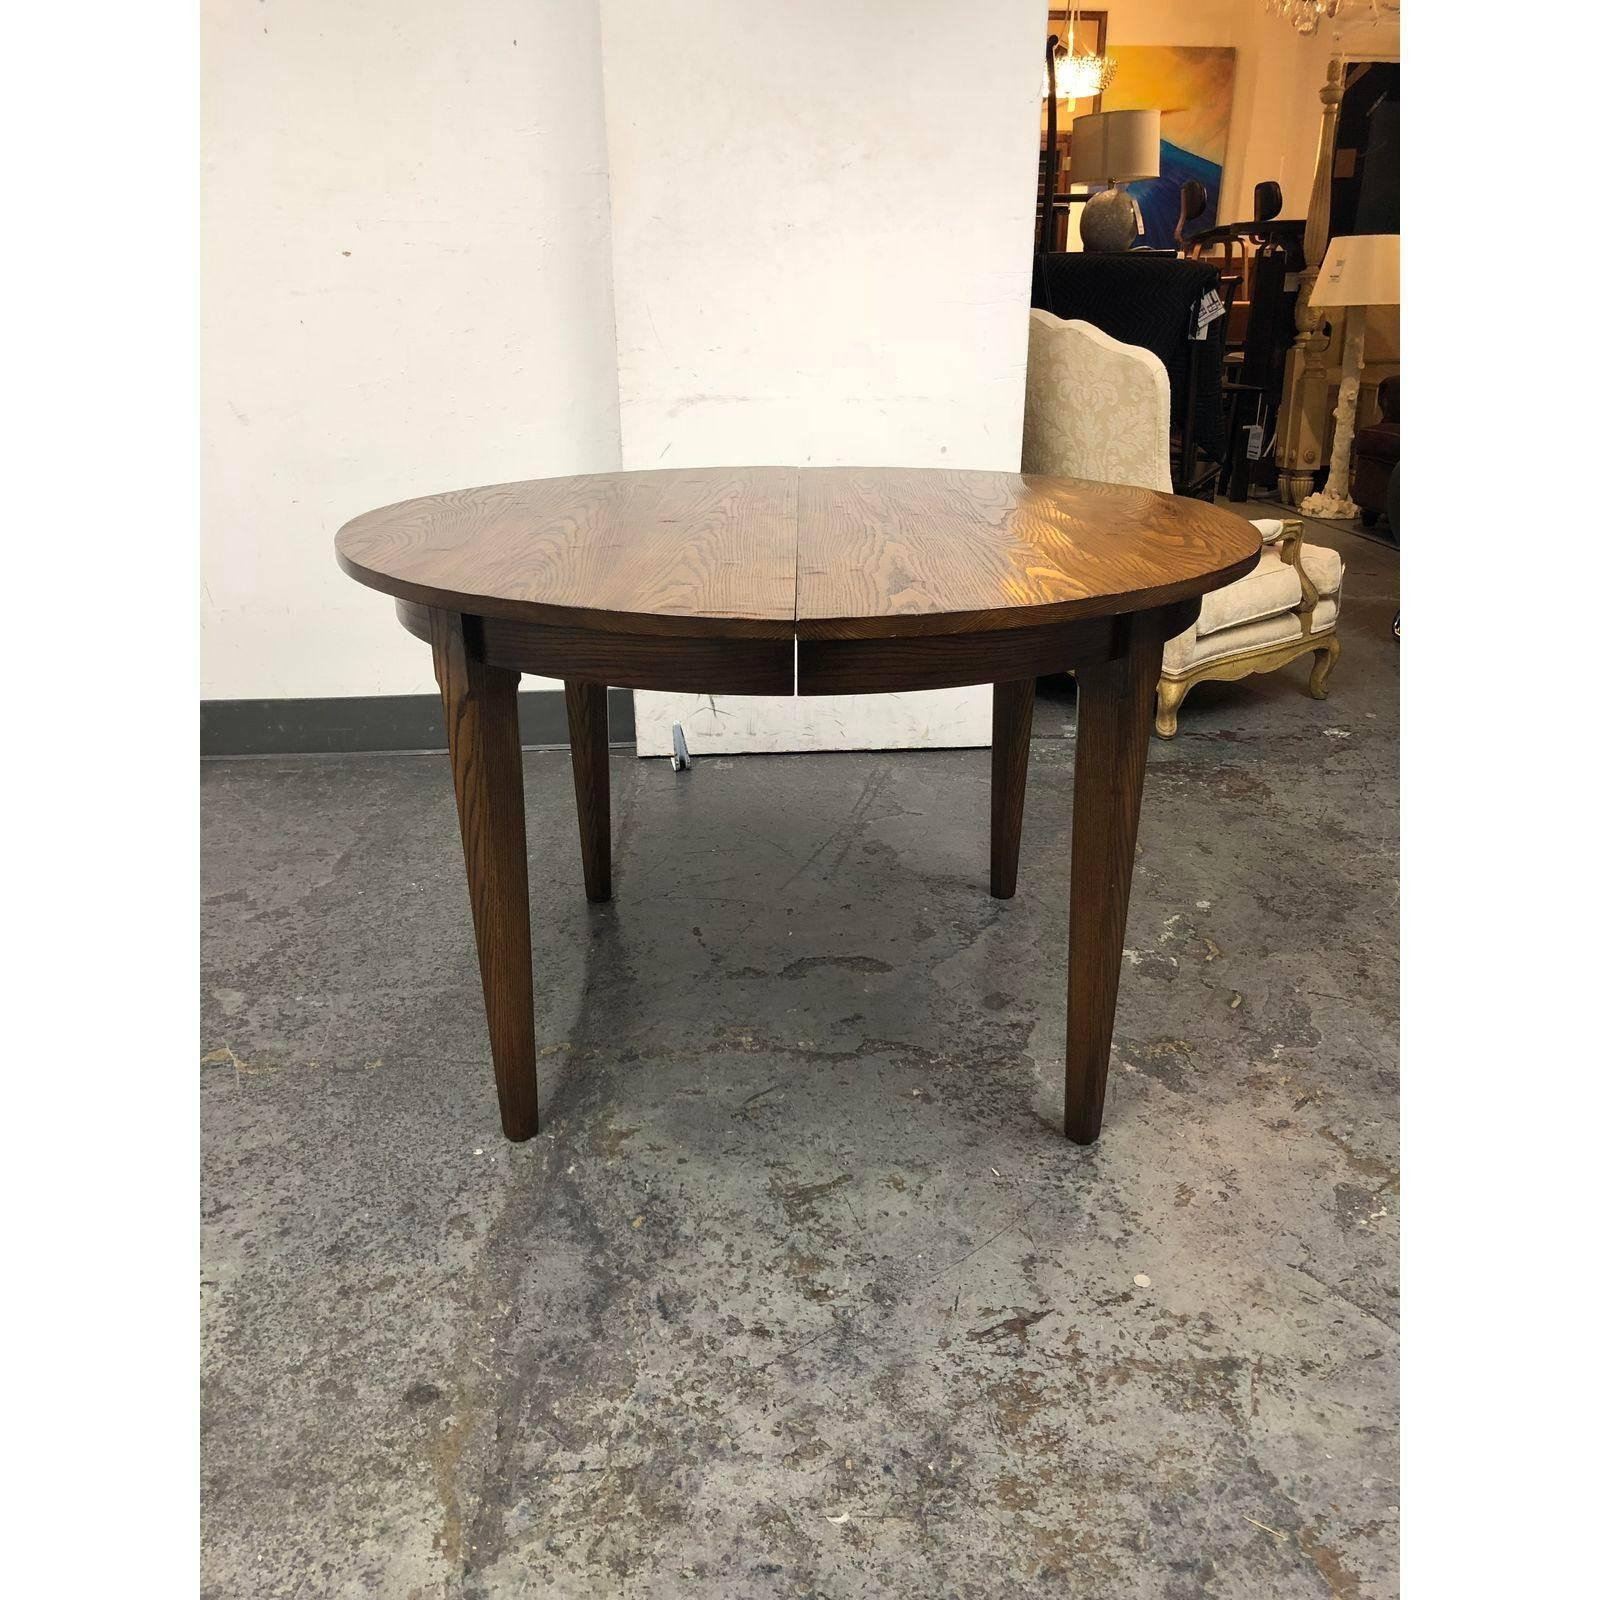 Most Popular Oak Dining Tables Regarding Yorkshire House Vermont Oak Dining Table And Four Leaves For Sale At (View 17 of 25)